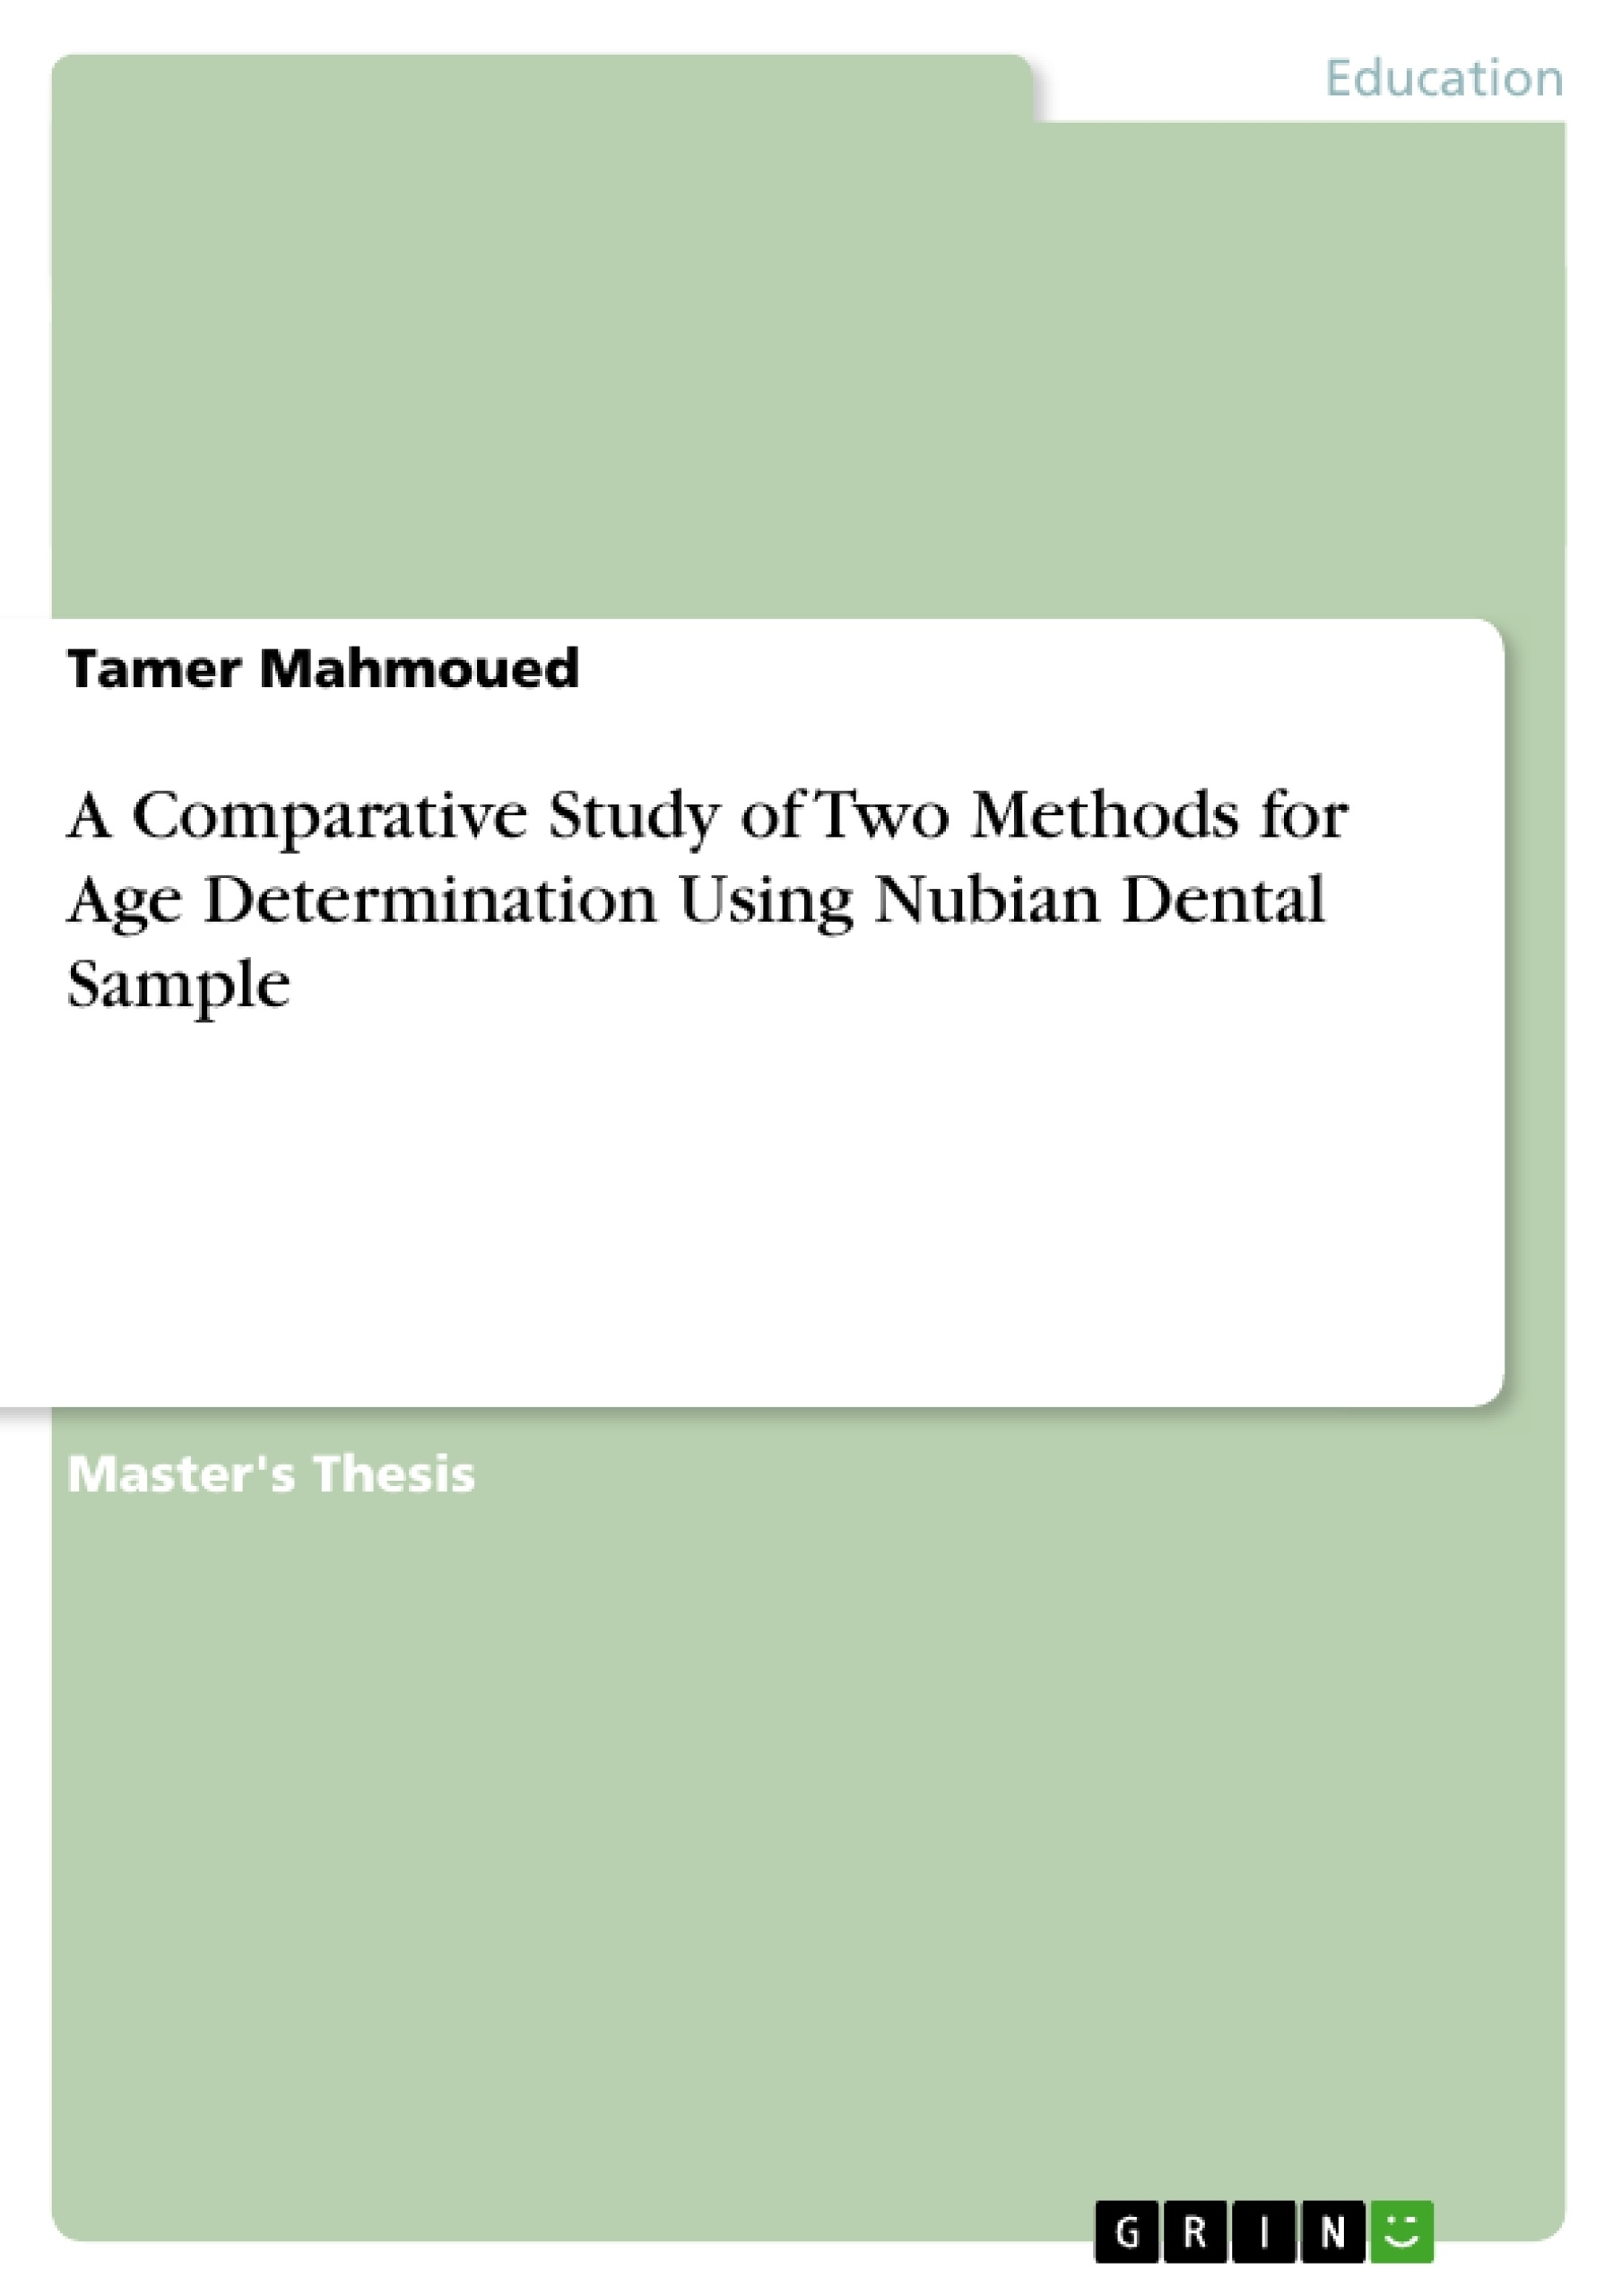 GRIN - A Comparative Study of Two Methods for Age Determination Using  Nubian Dental Sample